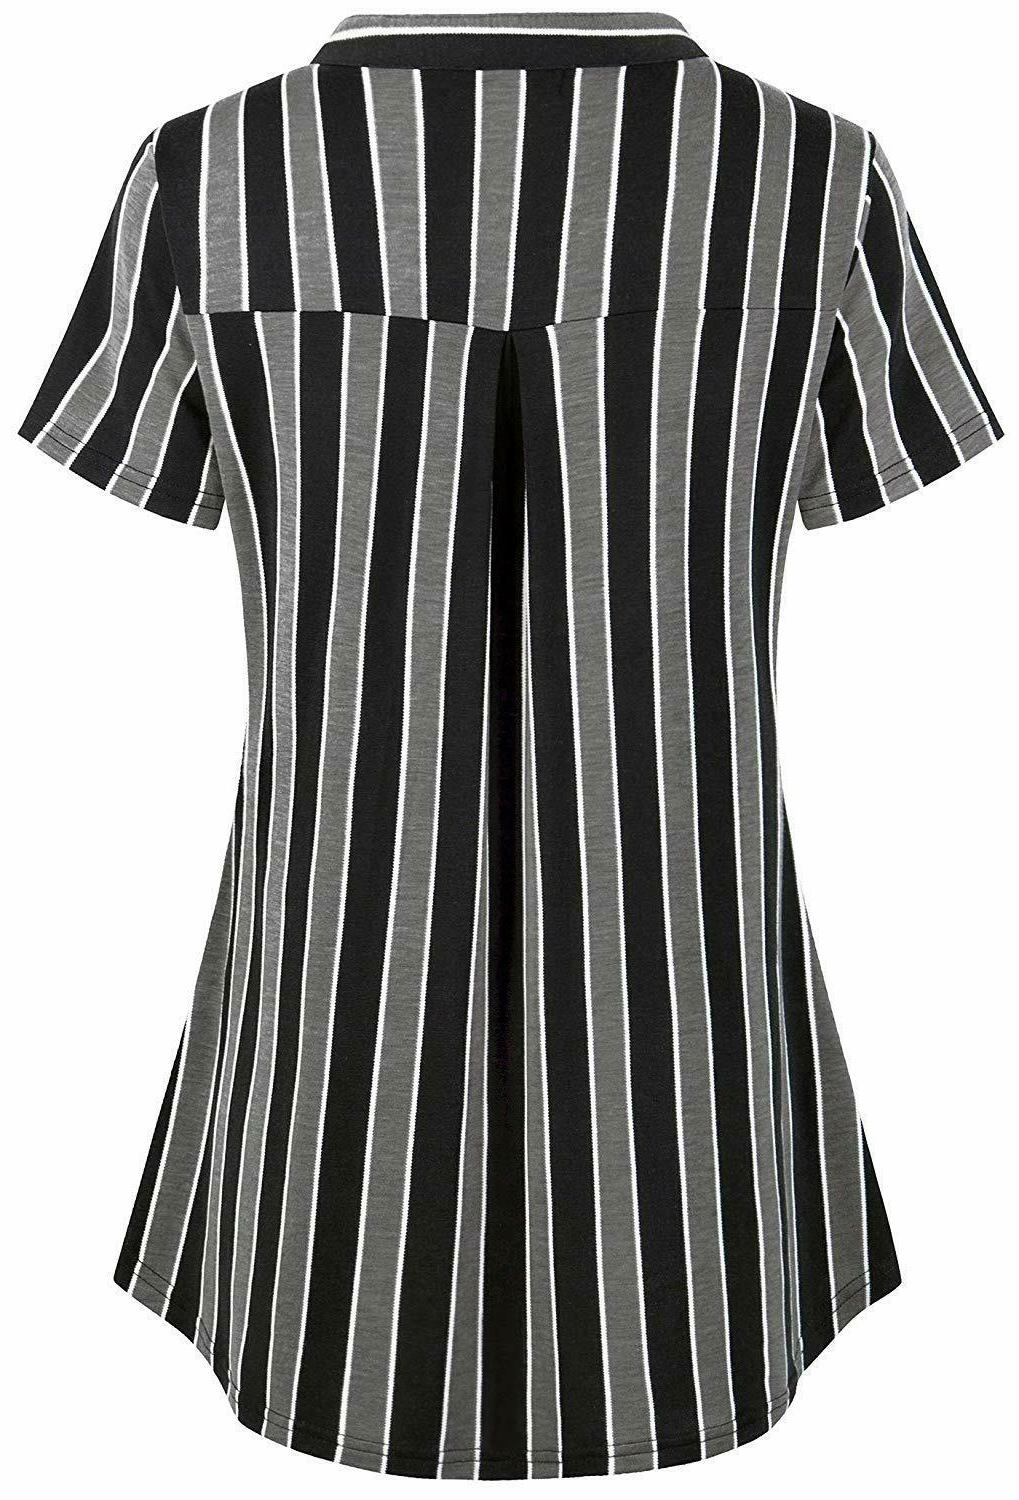 BEPEI Plaid up V Casual Blouse Top